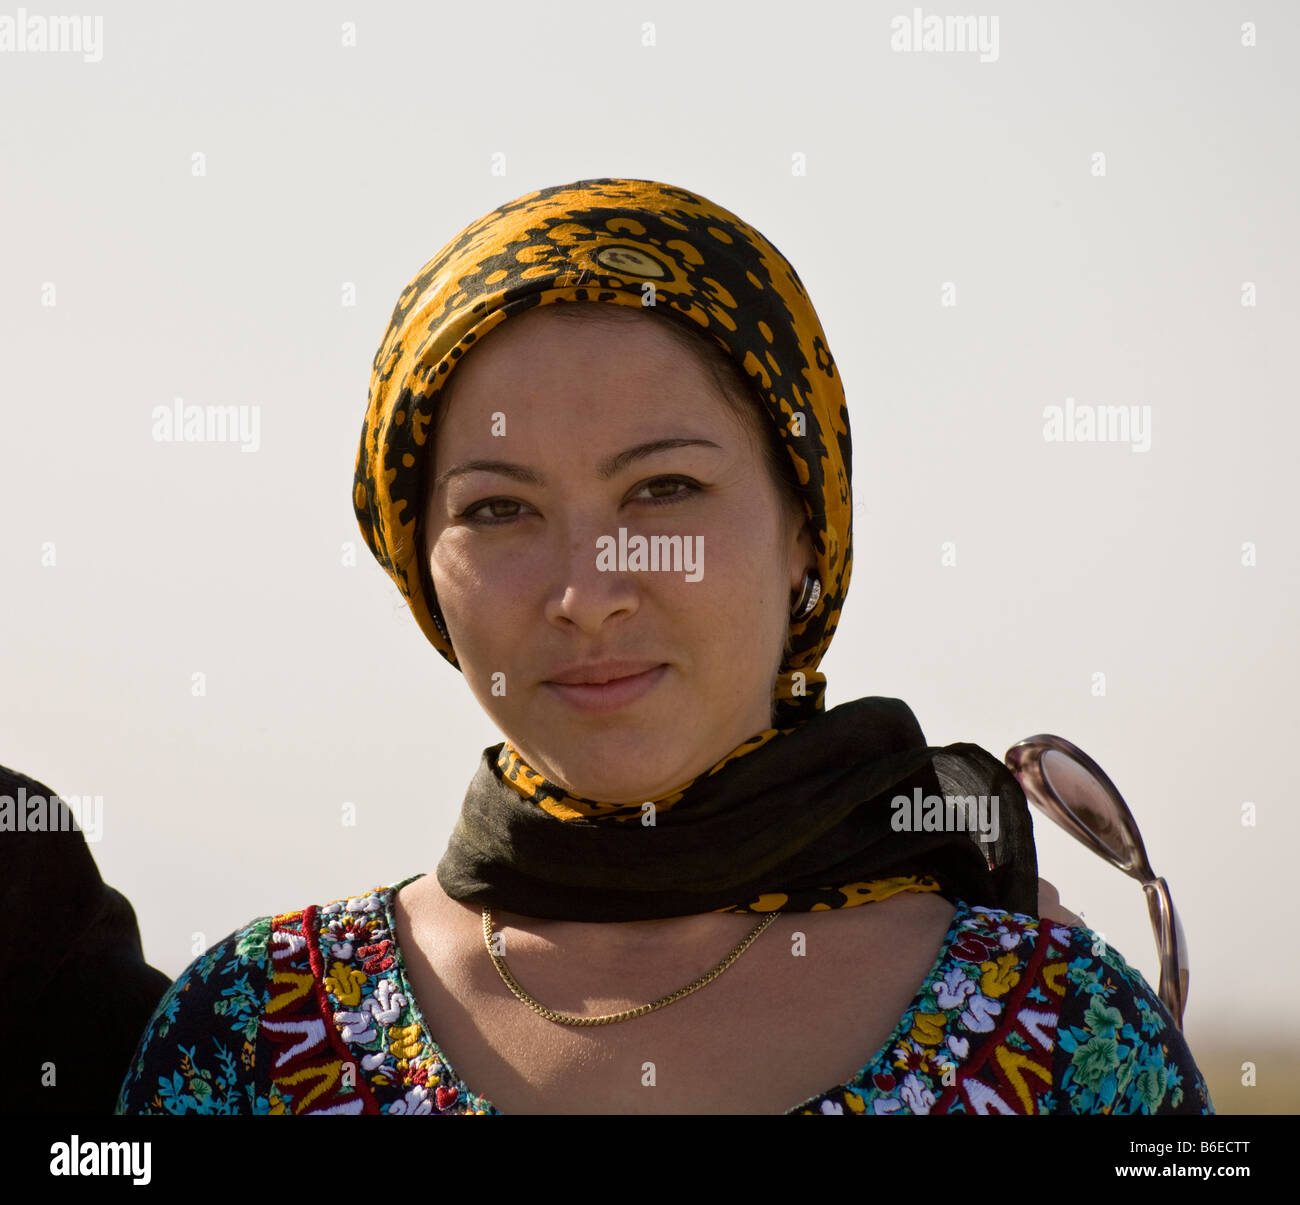 female pilgrim to the shrine of Jamal al-Din, Anau, Turkmenistan - Stock Image